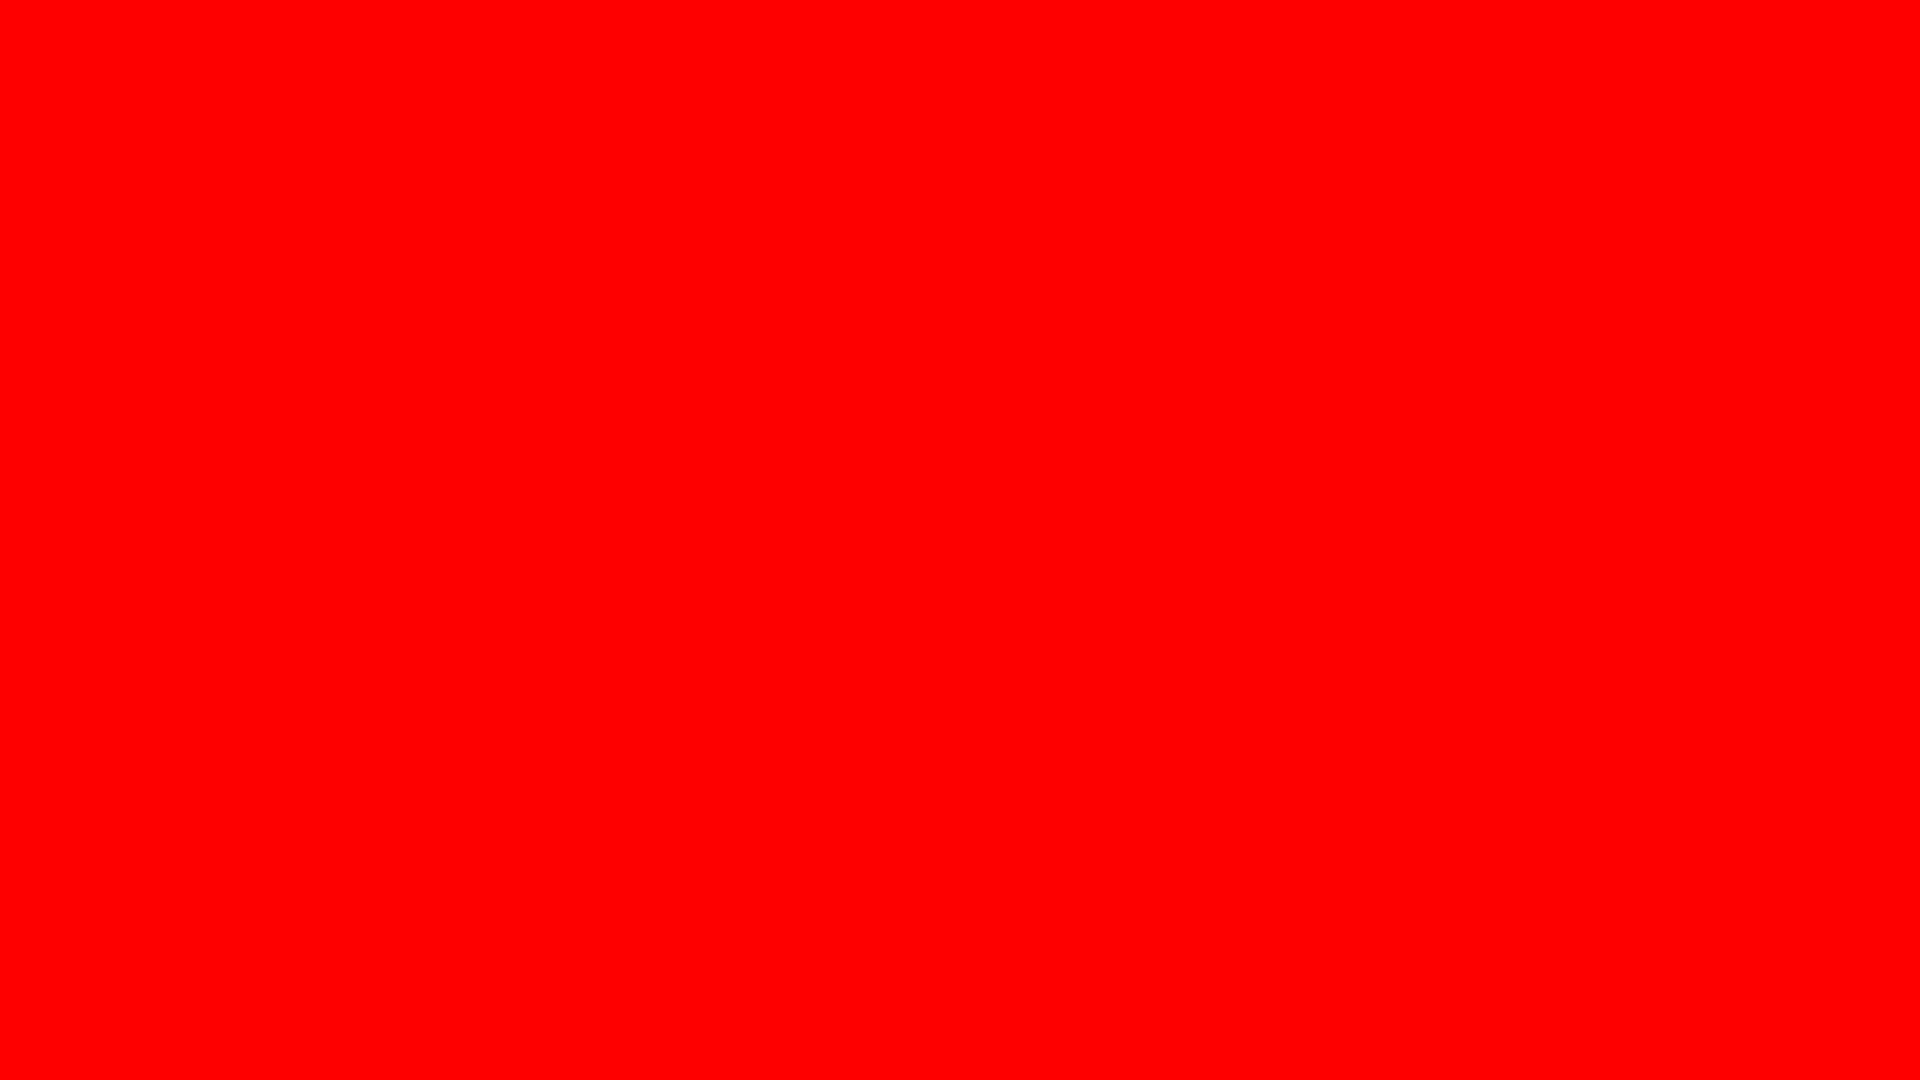 Title Red Solid Color Background Dimension 1920 X 1080 File Type JPG JPEG